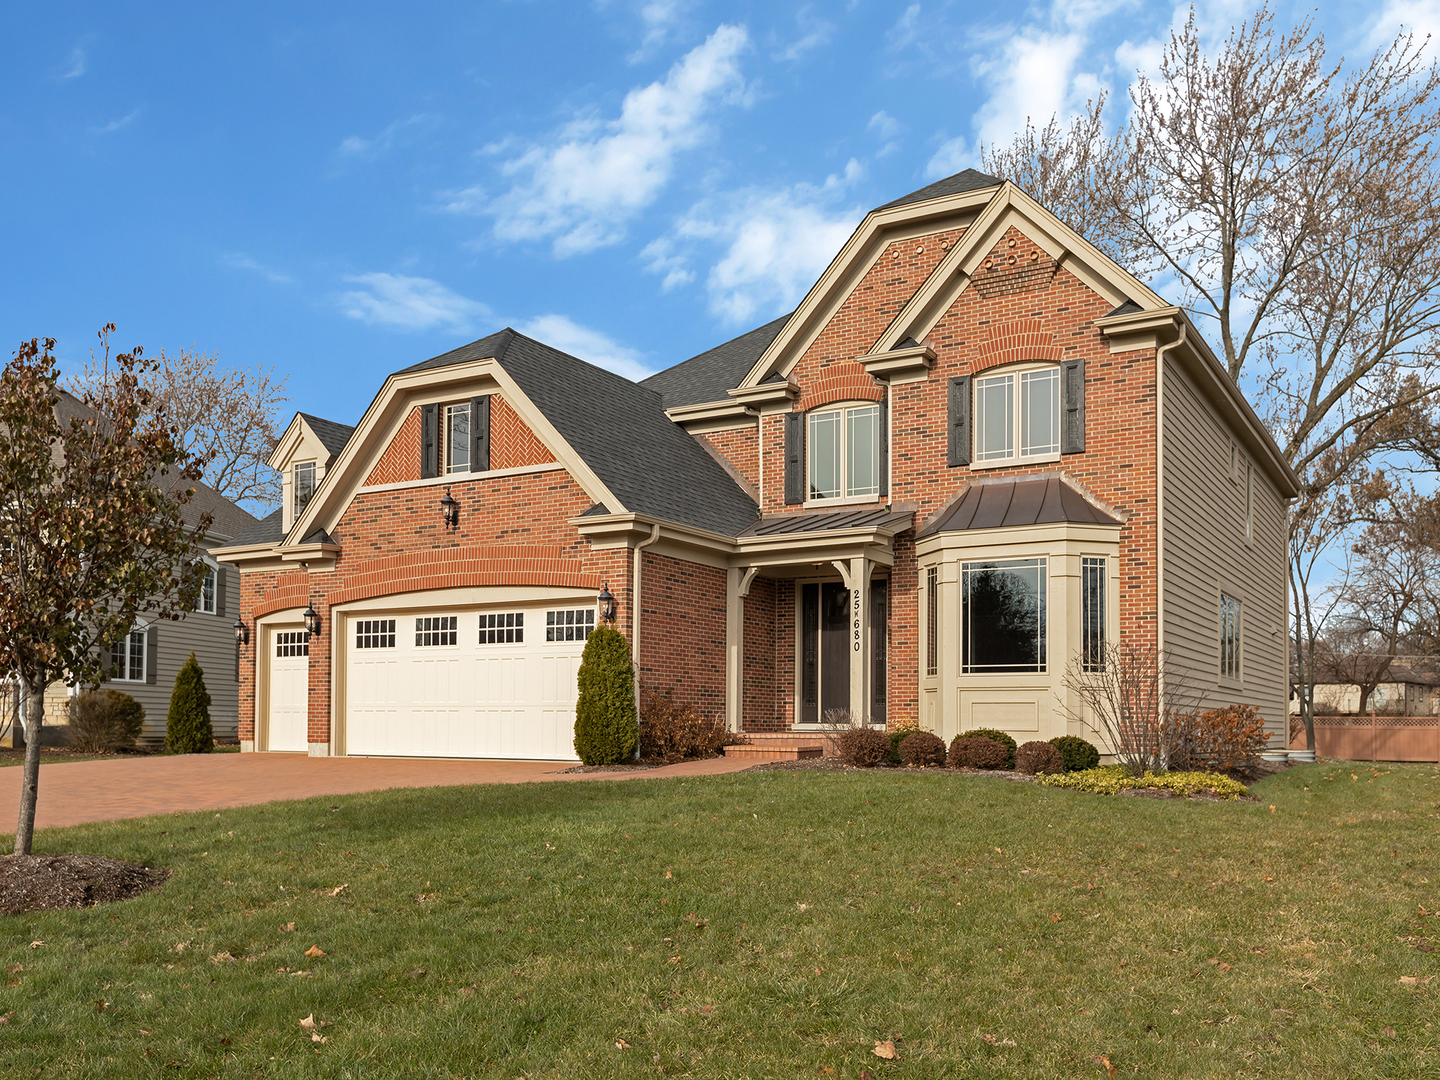 25W680 Prairie Avenue, Wheaton, Illinois